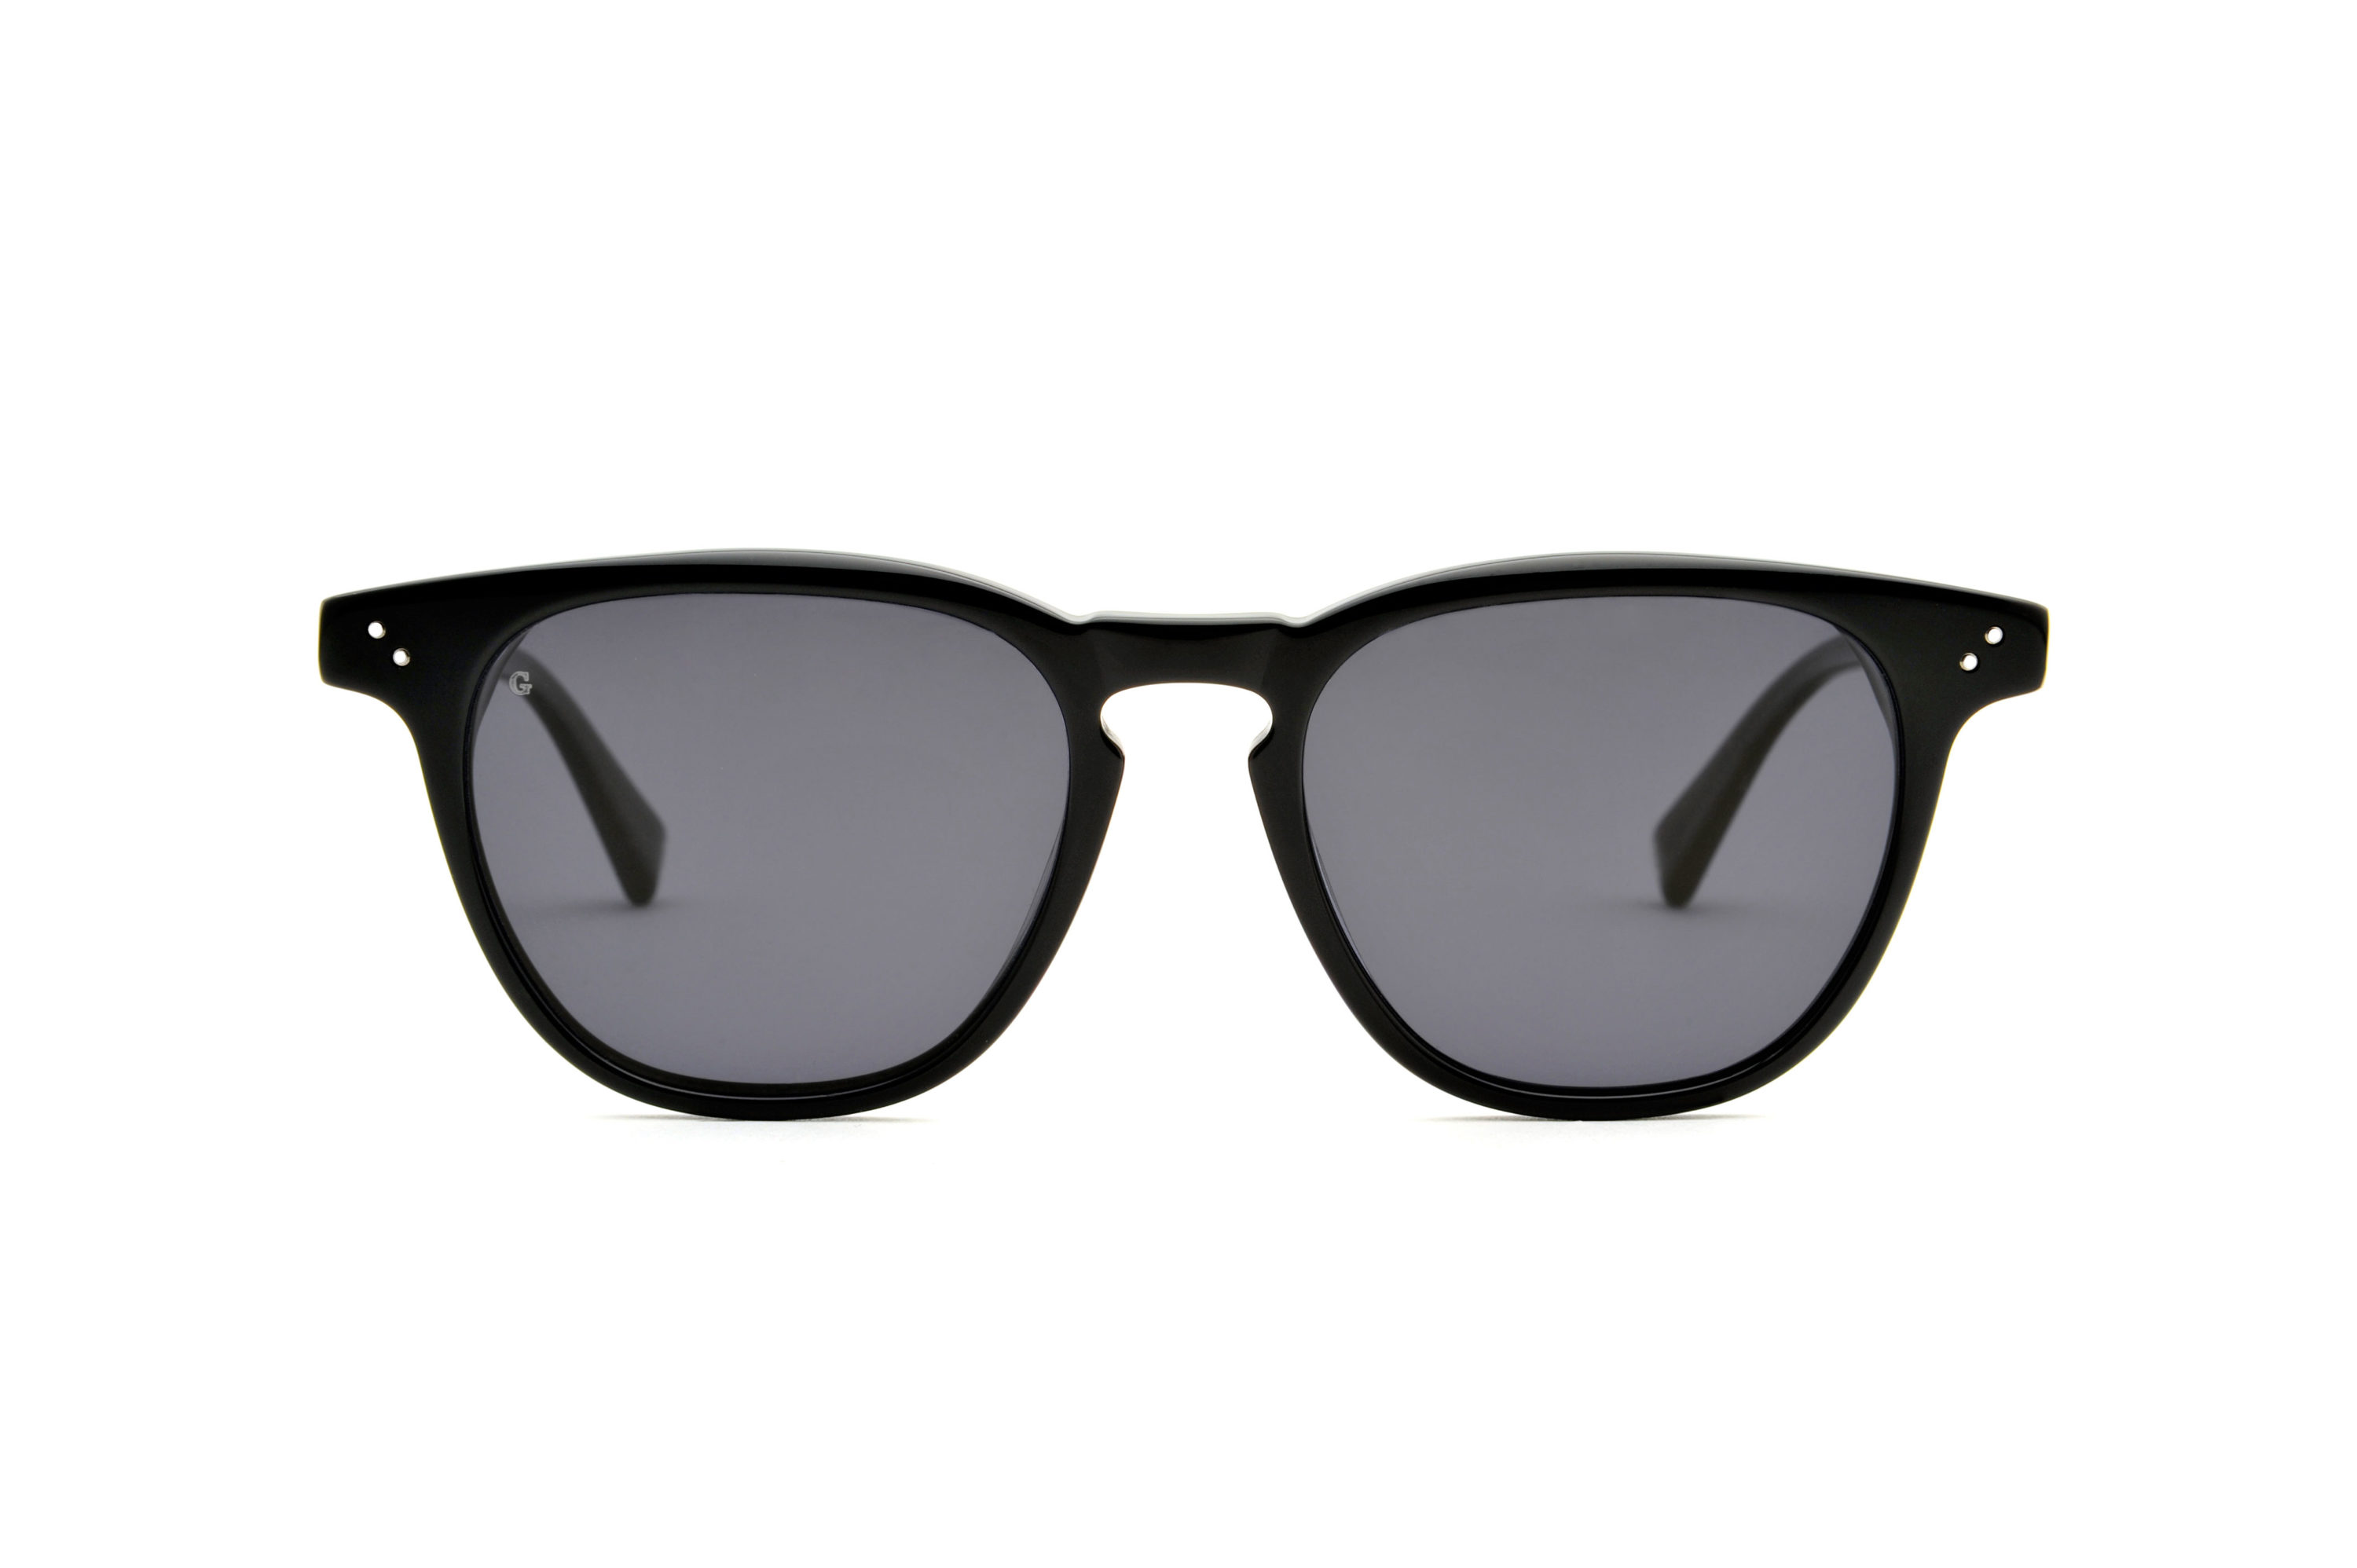 Larry acetate squared black sunglasses by GIGI Studios